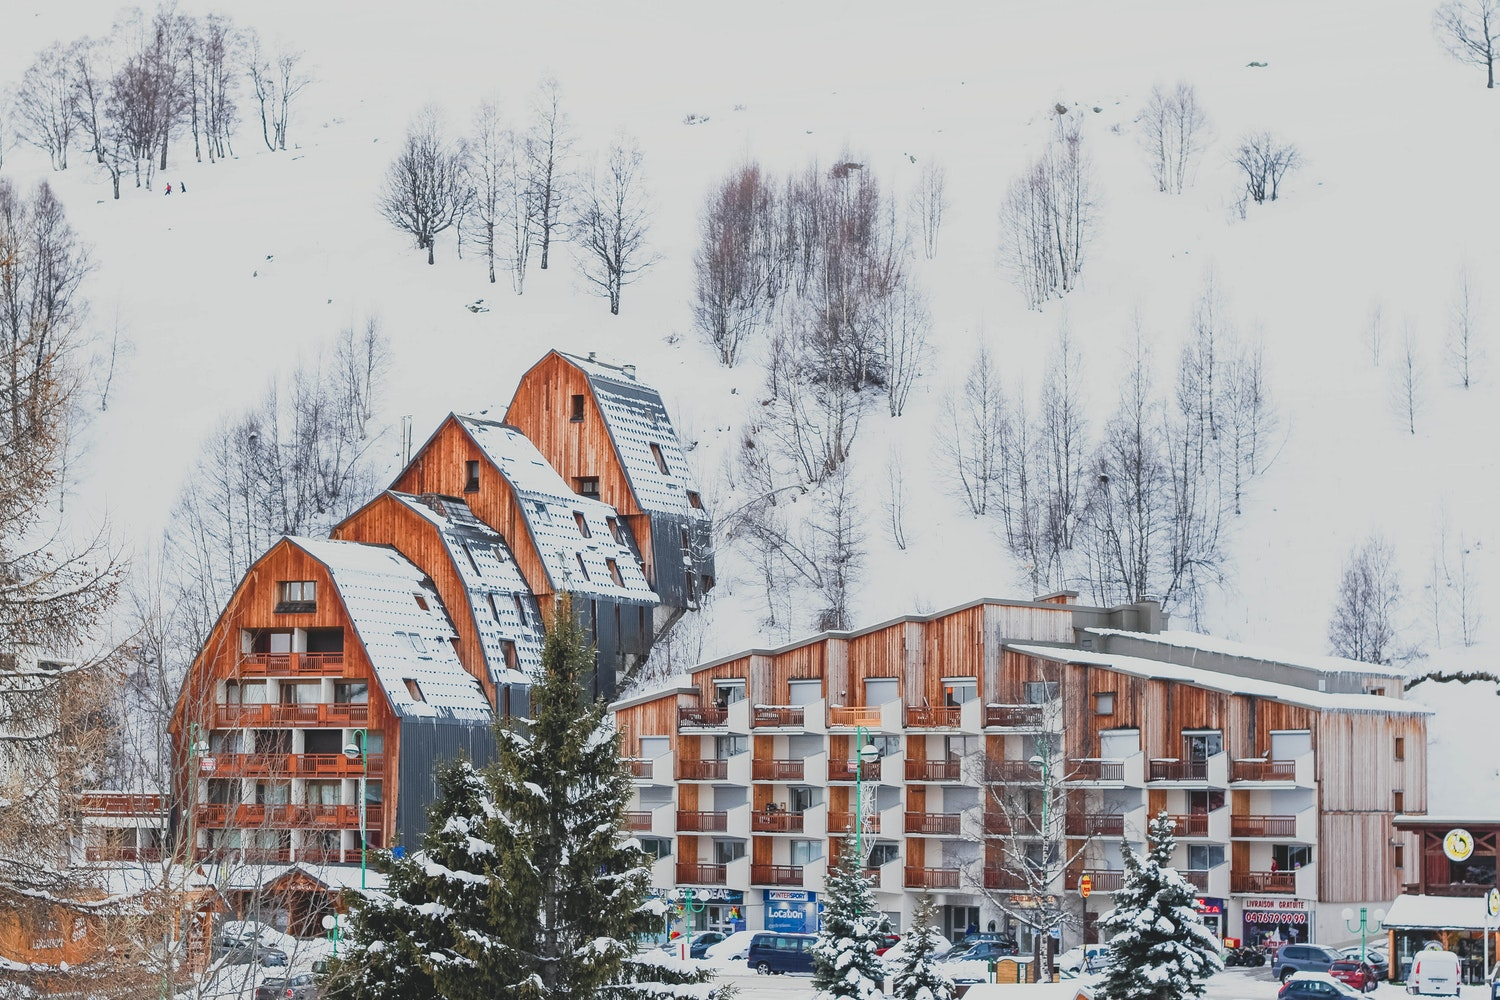 Find The Best Ski Resort This Winter